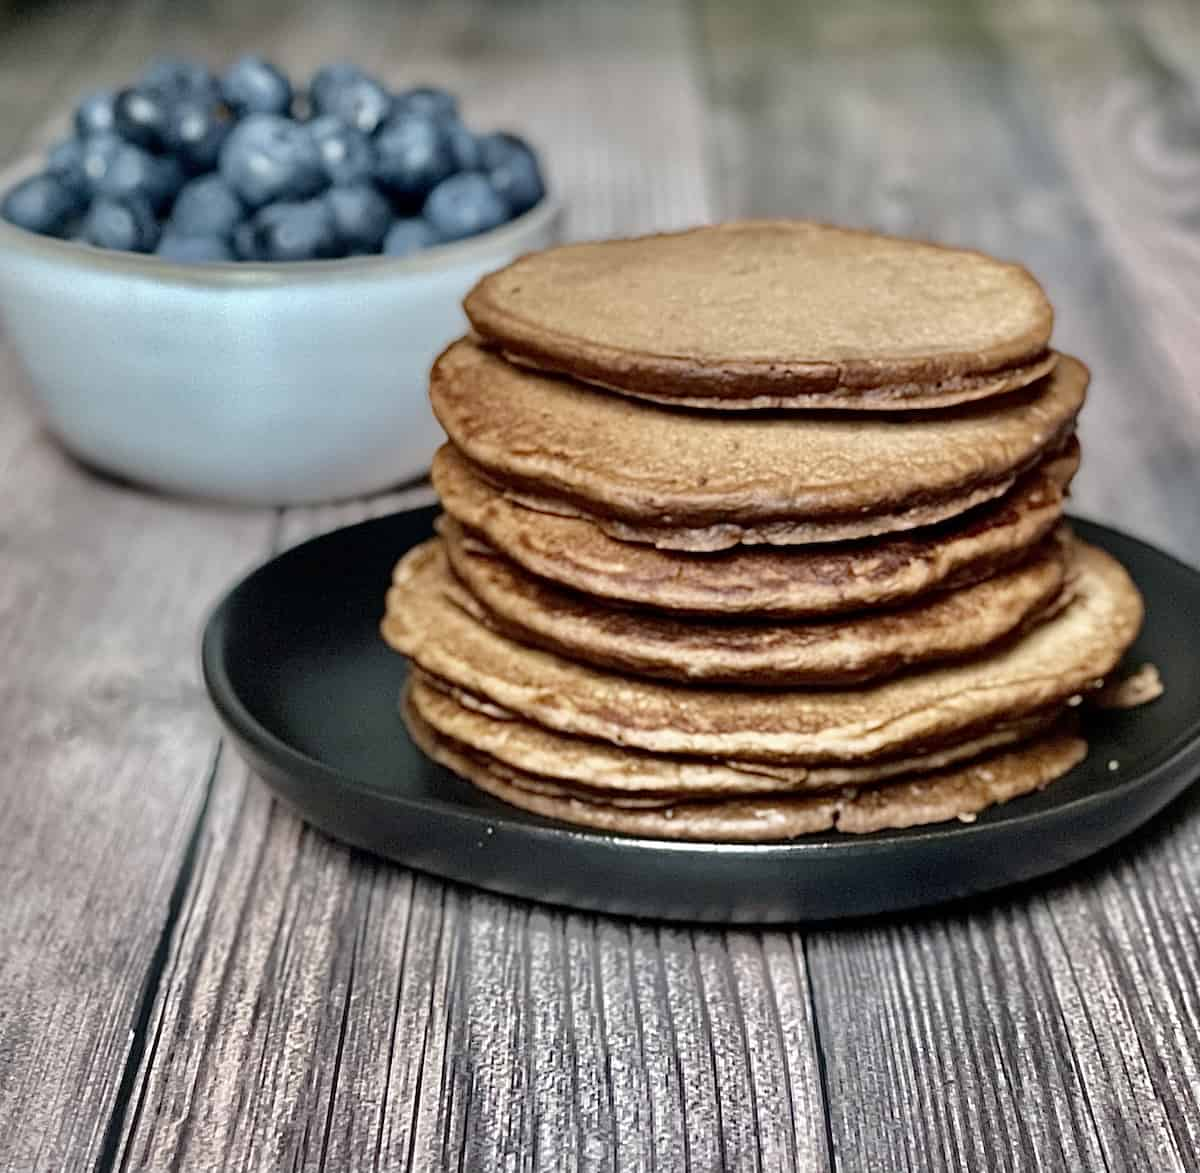 a stack of chocolate chip pancakes on a black plate